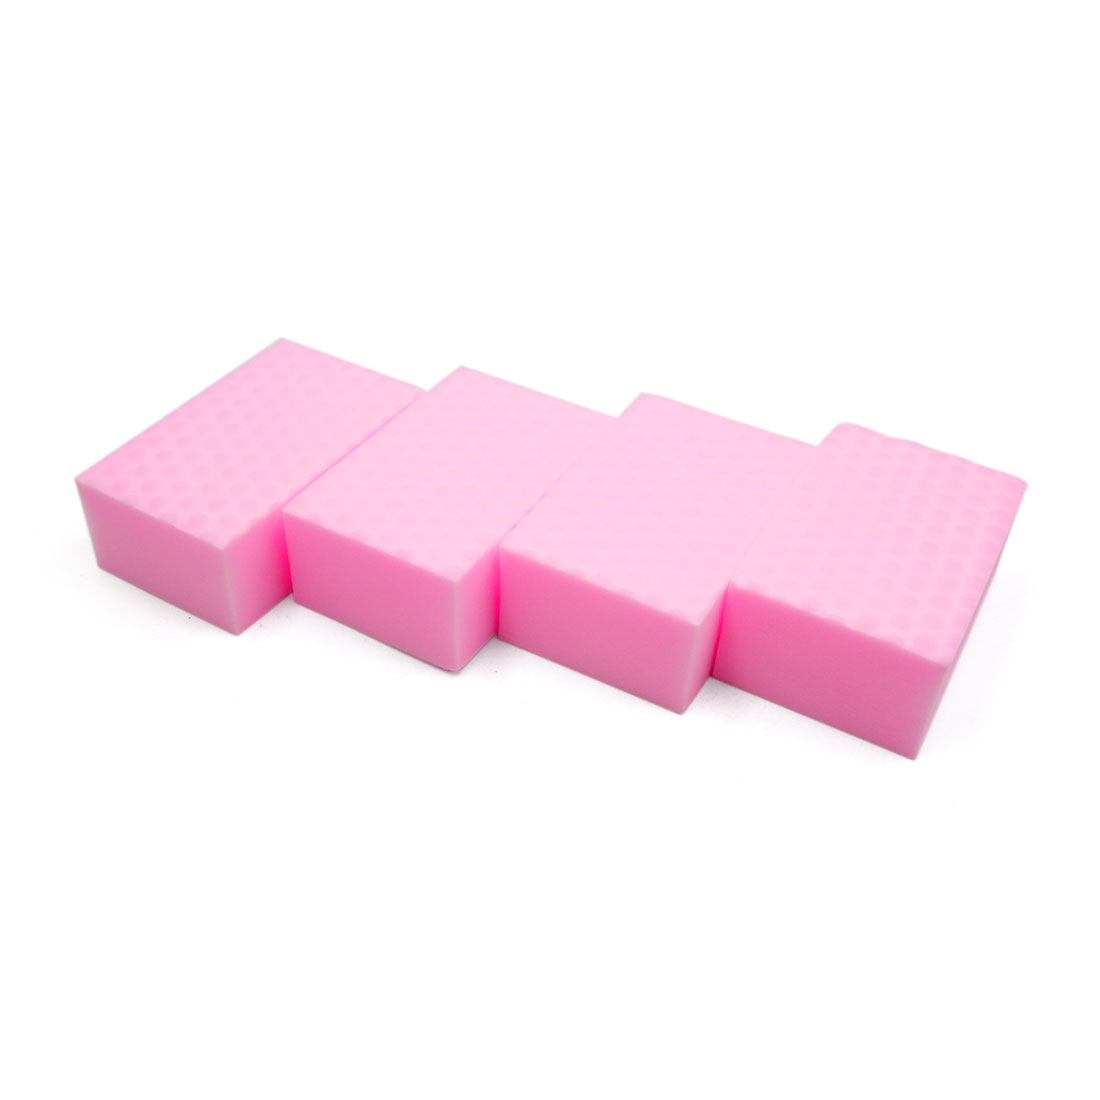 4Pcs Pink Rectangle Shaped Automobile Car Cleaner Cleaning Tool Washing Sponge